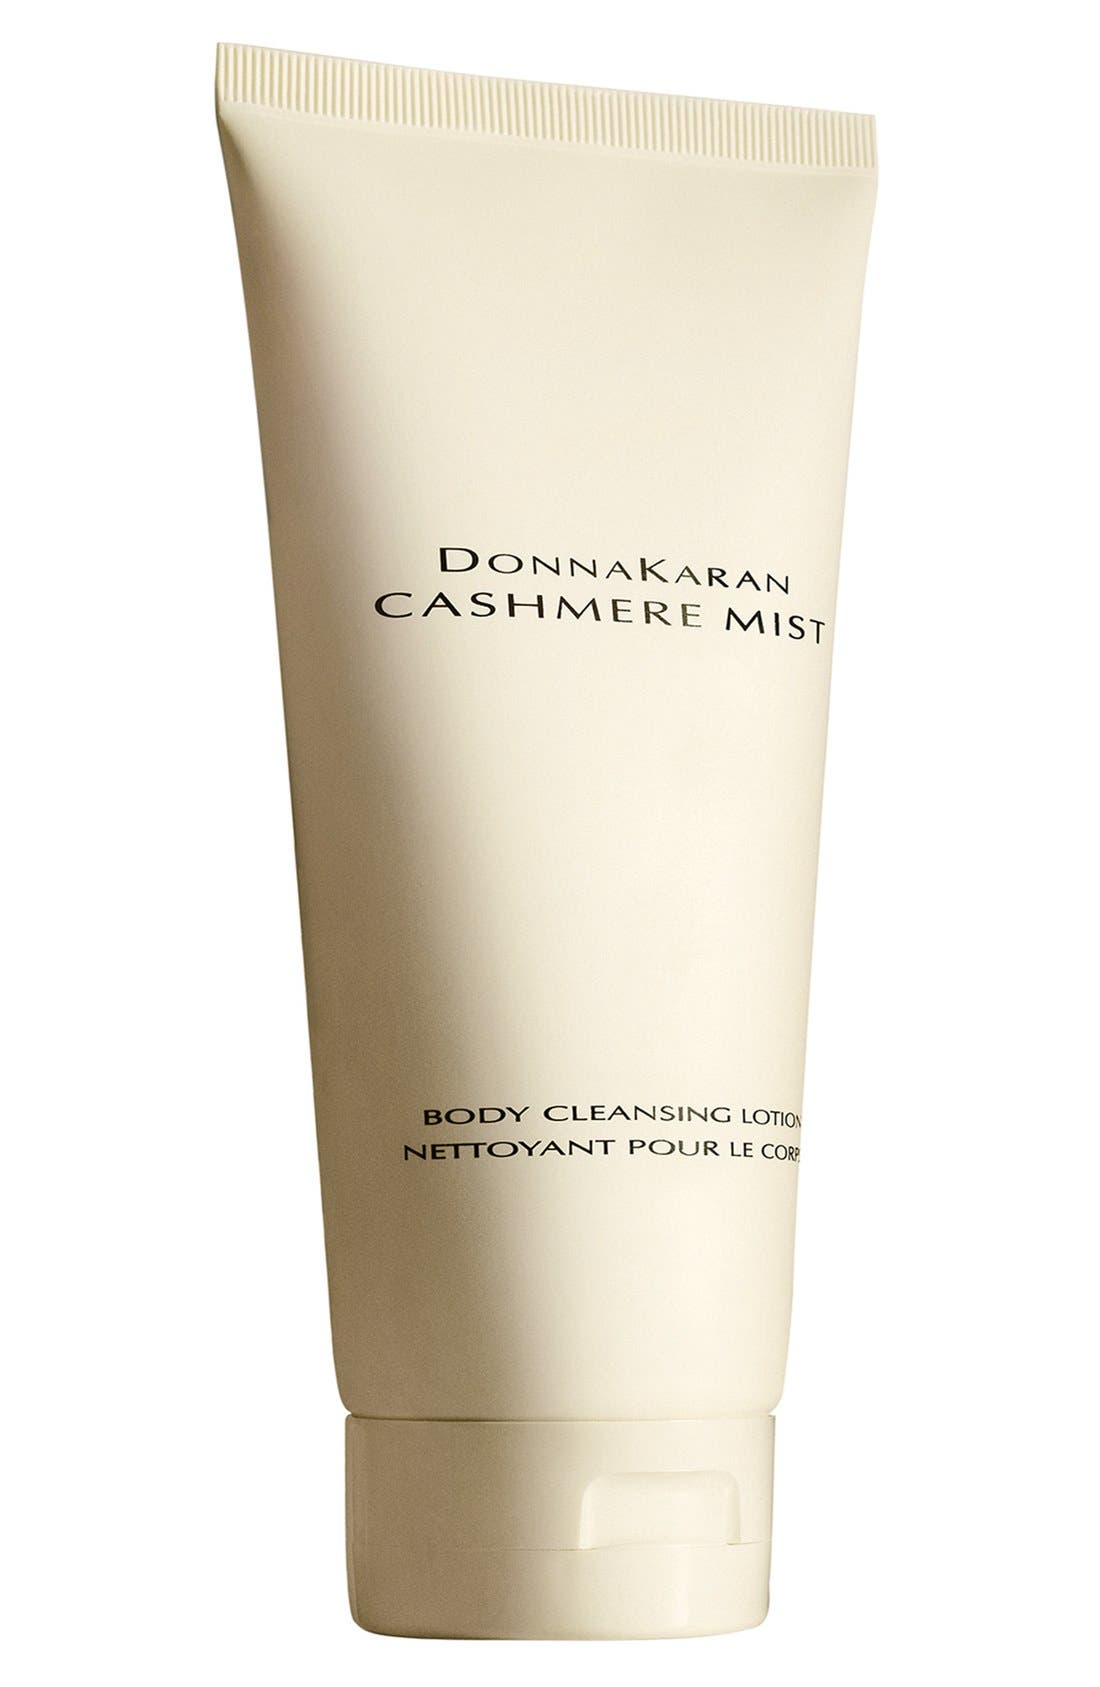 Donna Karan 'Cashmere Mist' Body Cleansing Lotion